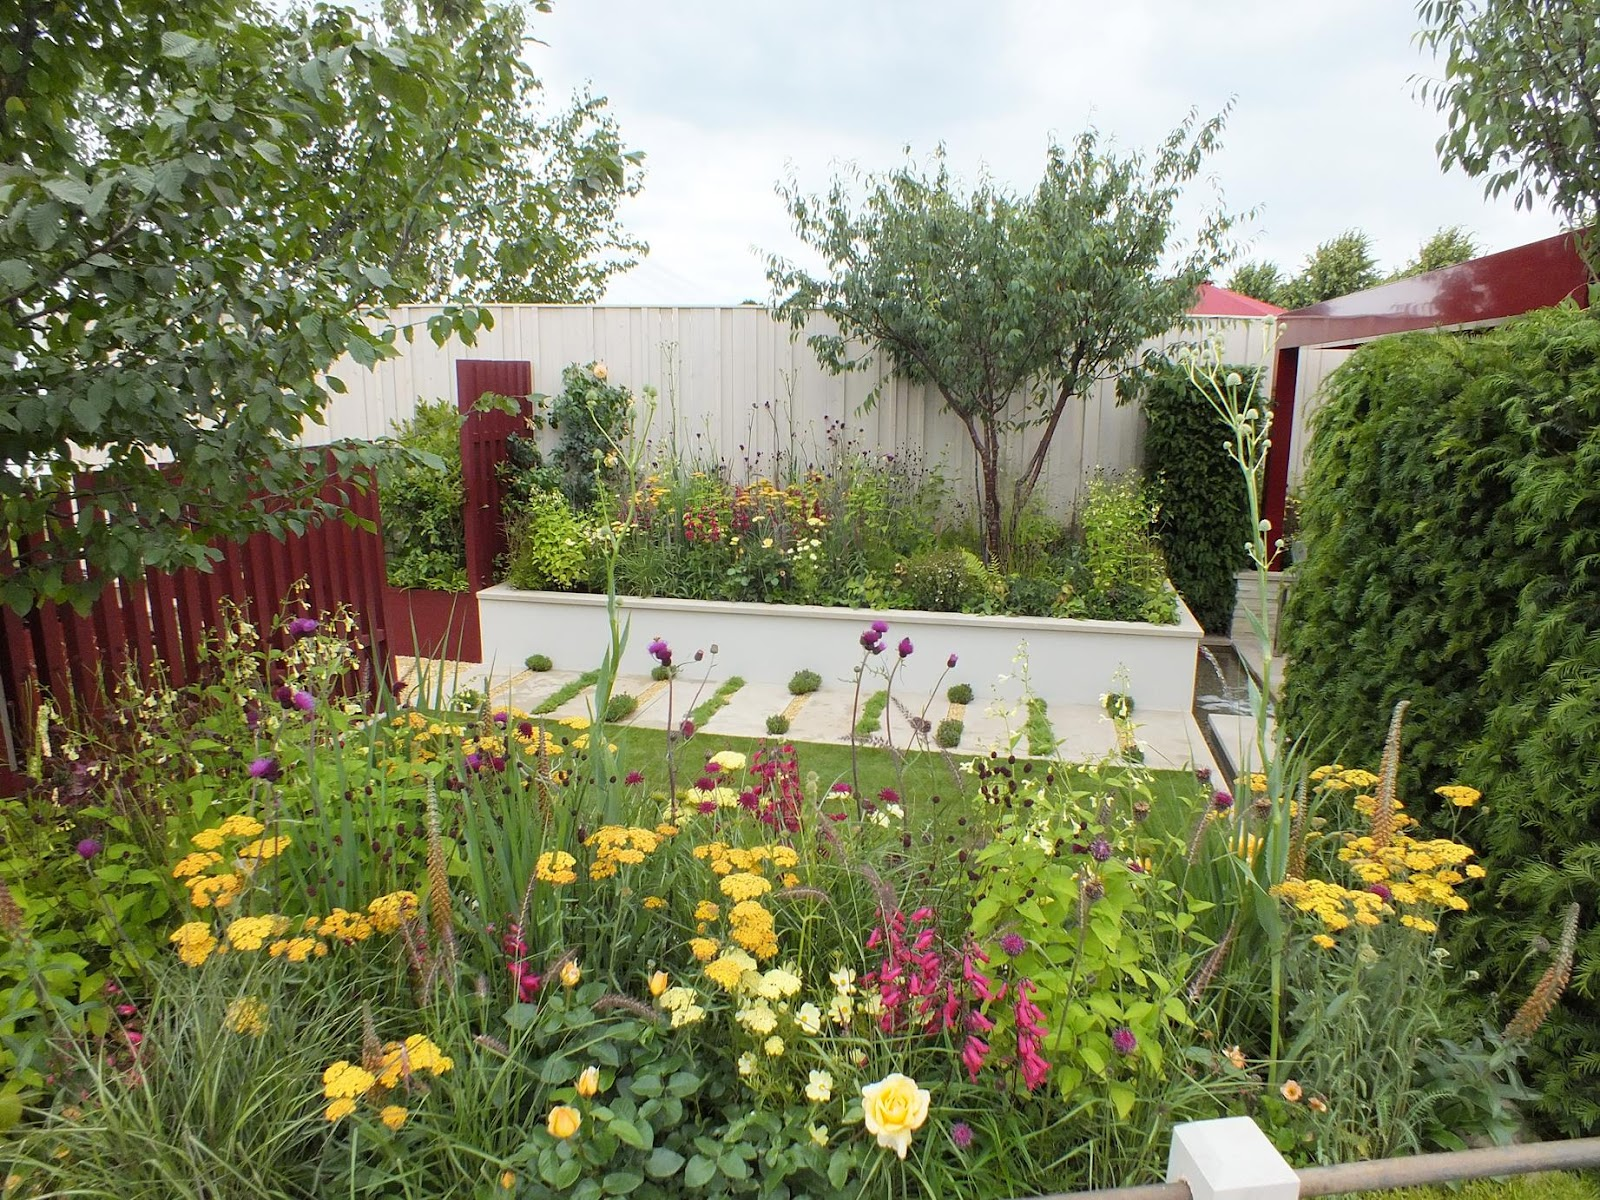 Alternative eden exotic garden rhs hampton court flower show 2016 show gardens - Hampton court flower show ...